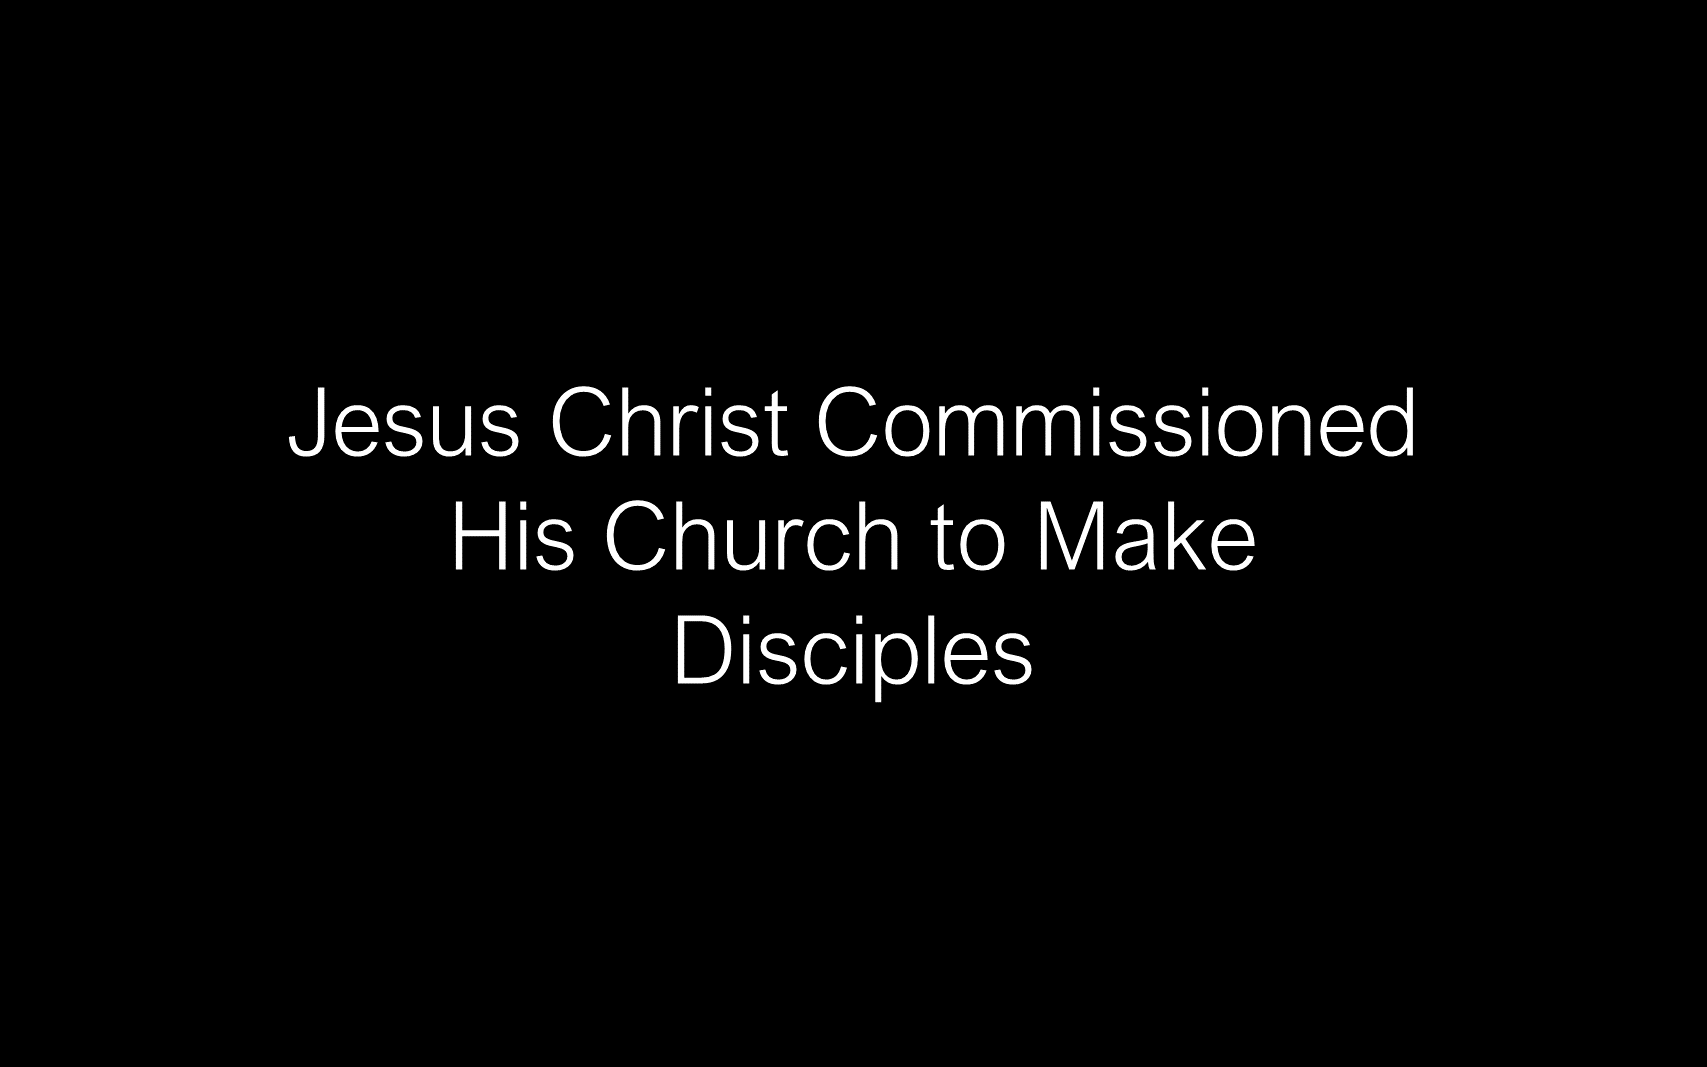 ESH-11 - The Discipline Of Disciple-Making - Disciples - Follow Christ & Make Disciples (4)